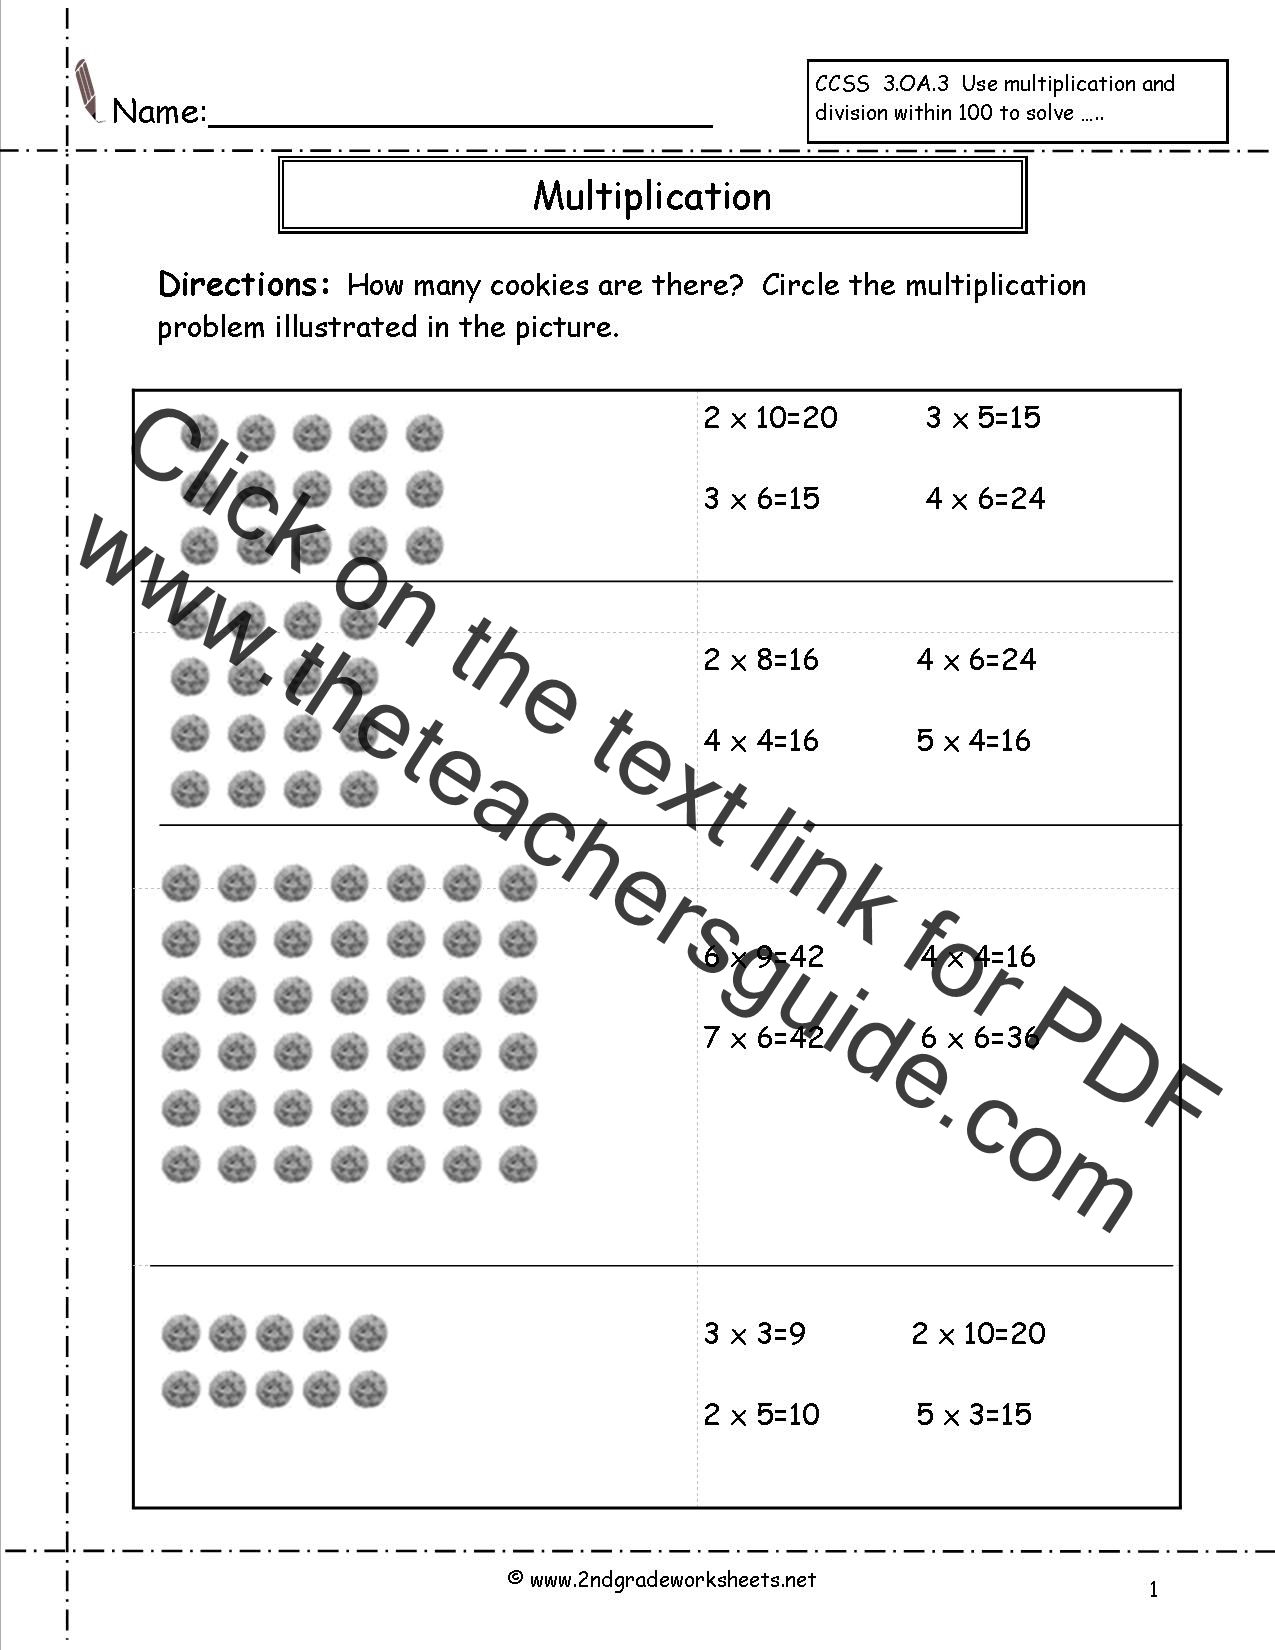 Multiplication Arrays Worksheets – Multiplication with Arrays Worksheets